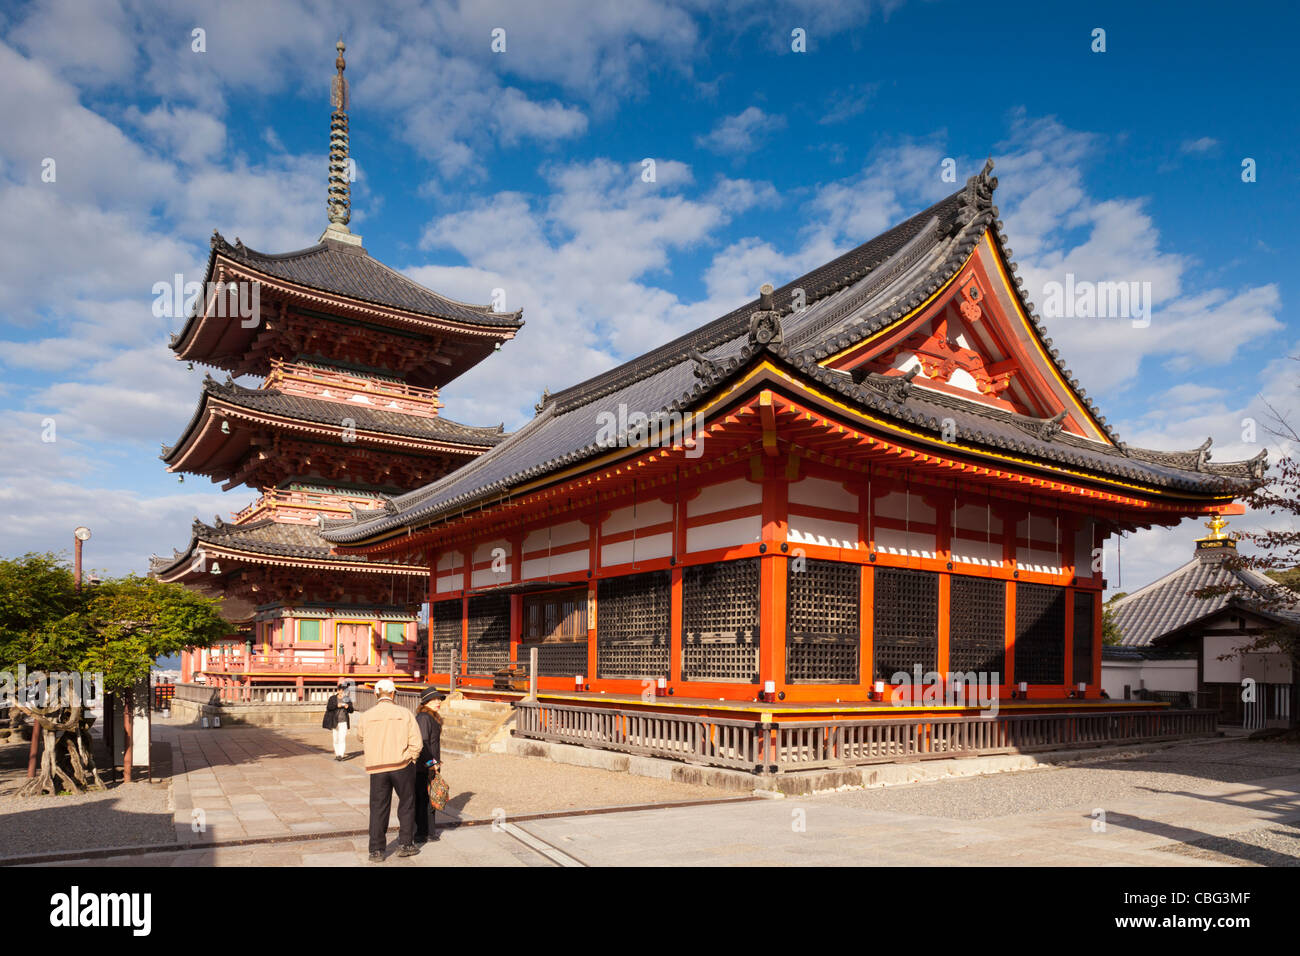 The Hall of Writings (Sutra Hall) and three storey pagoda in the Kiyomizu-dera temple complex, Kyoto, Japan. - Stock Image